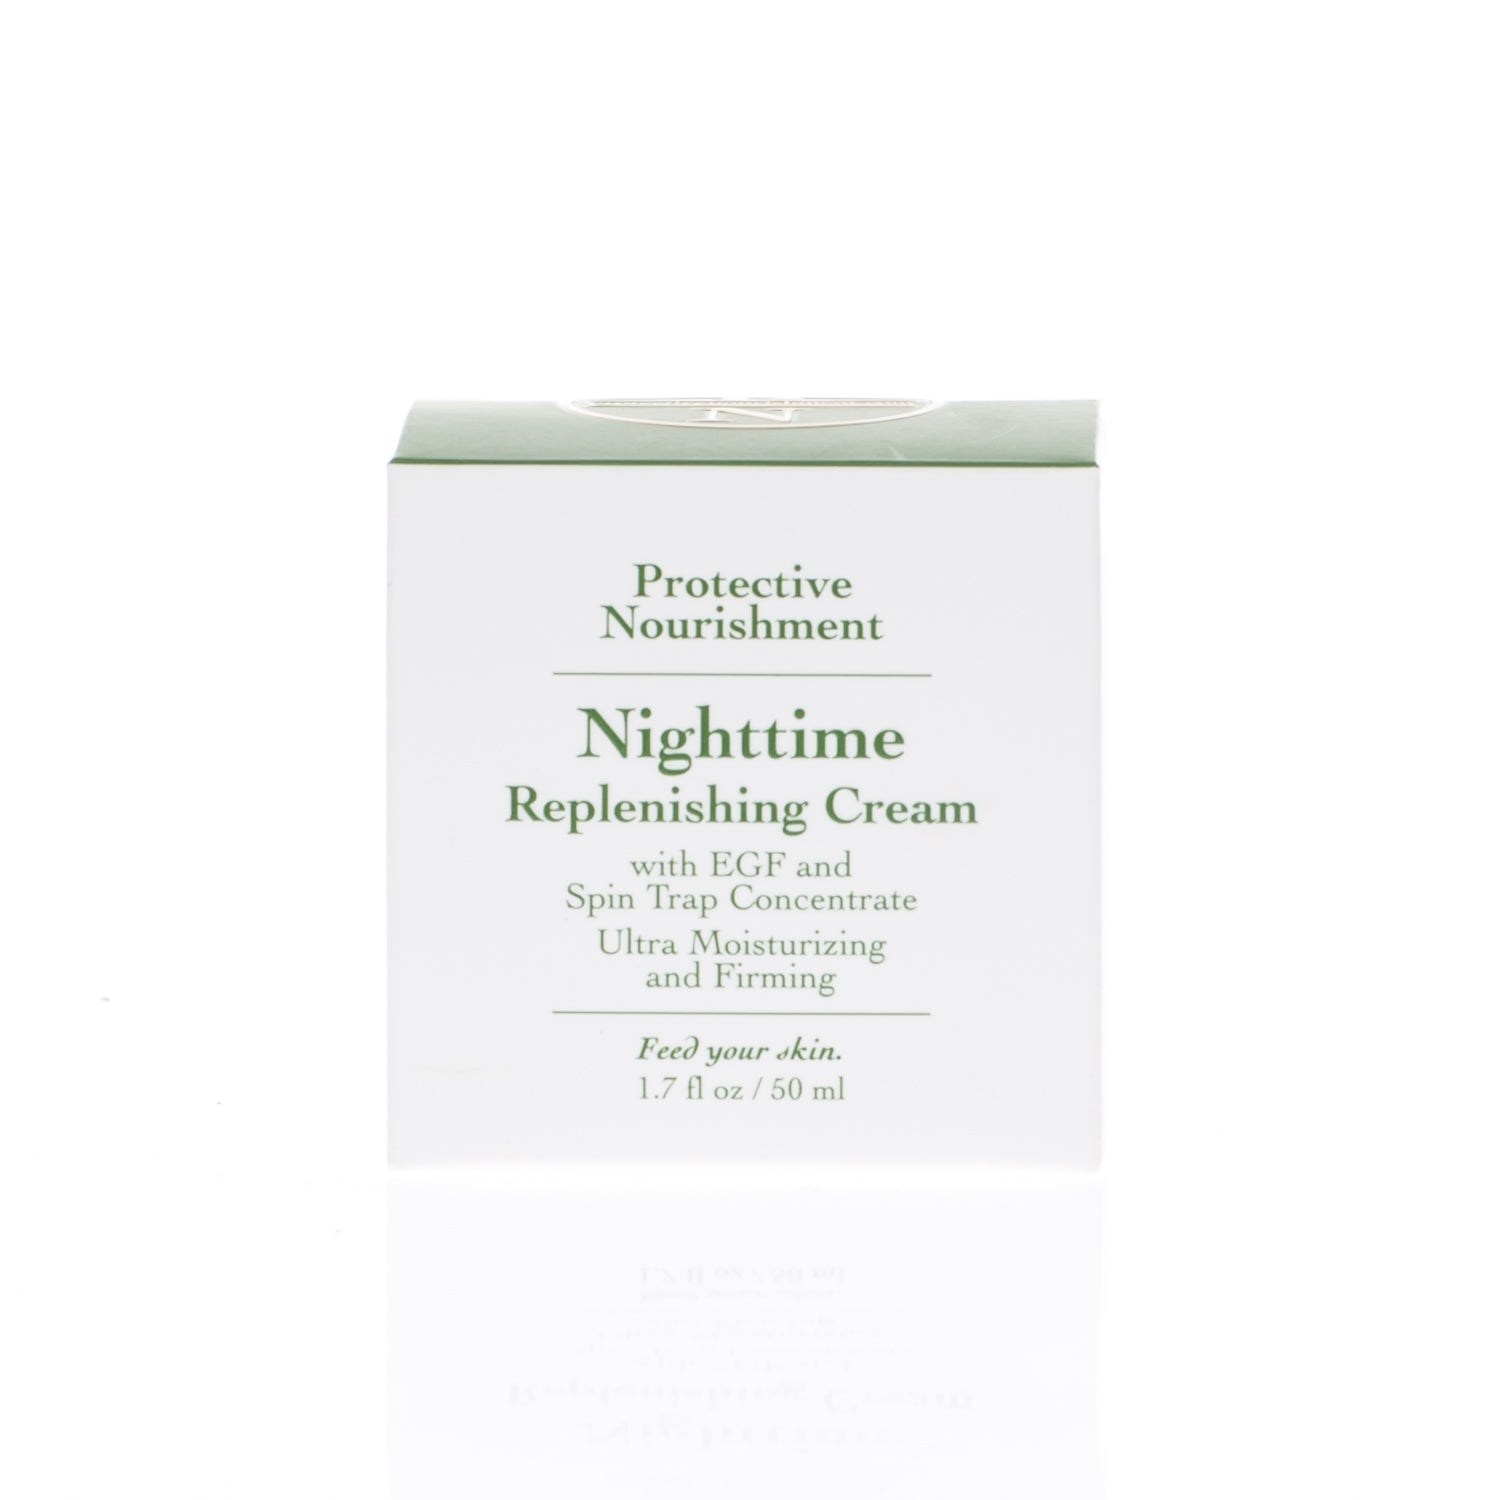 Nighttime Replenishing Cream - Protective Nourishment